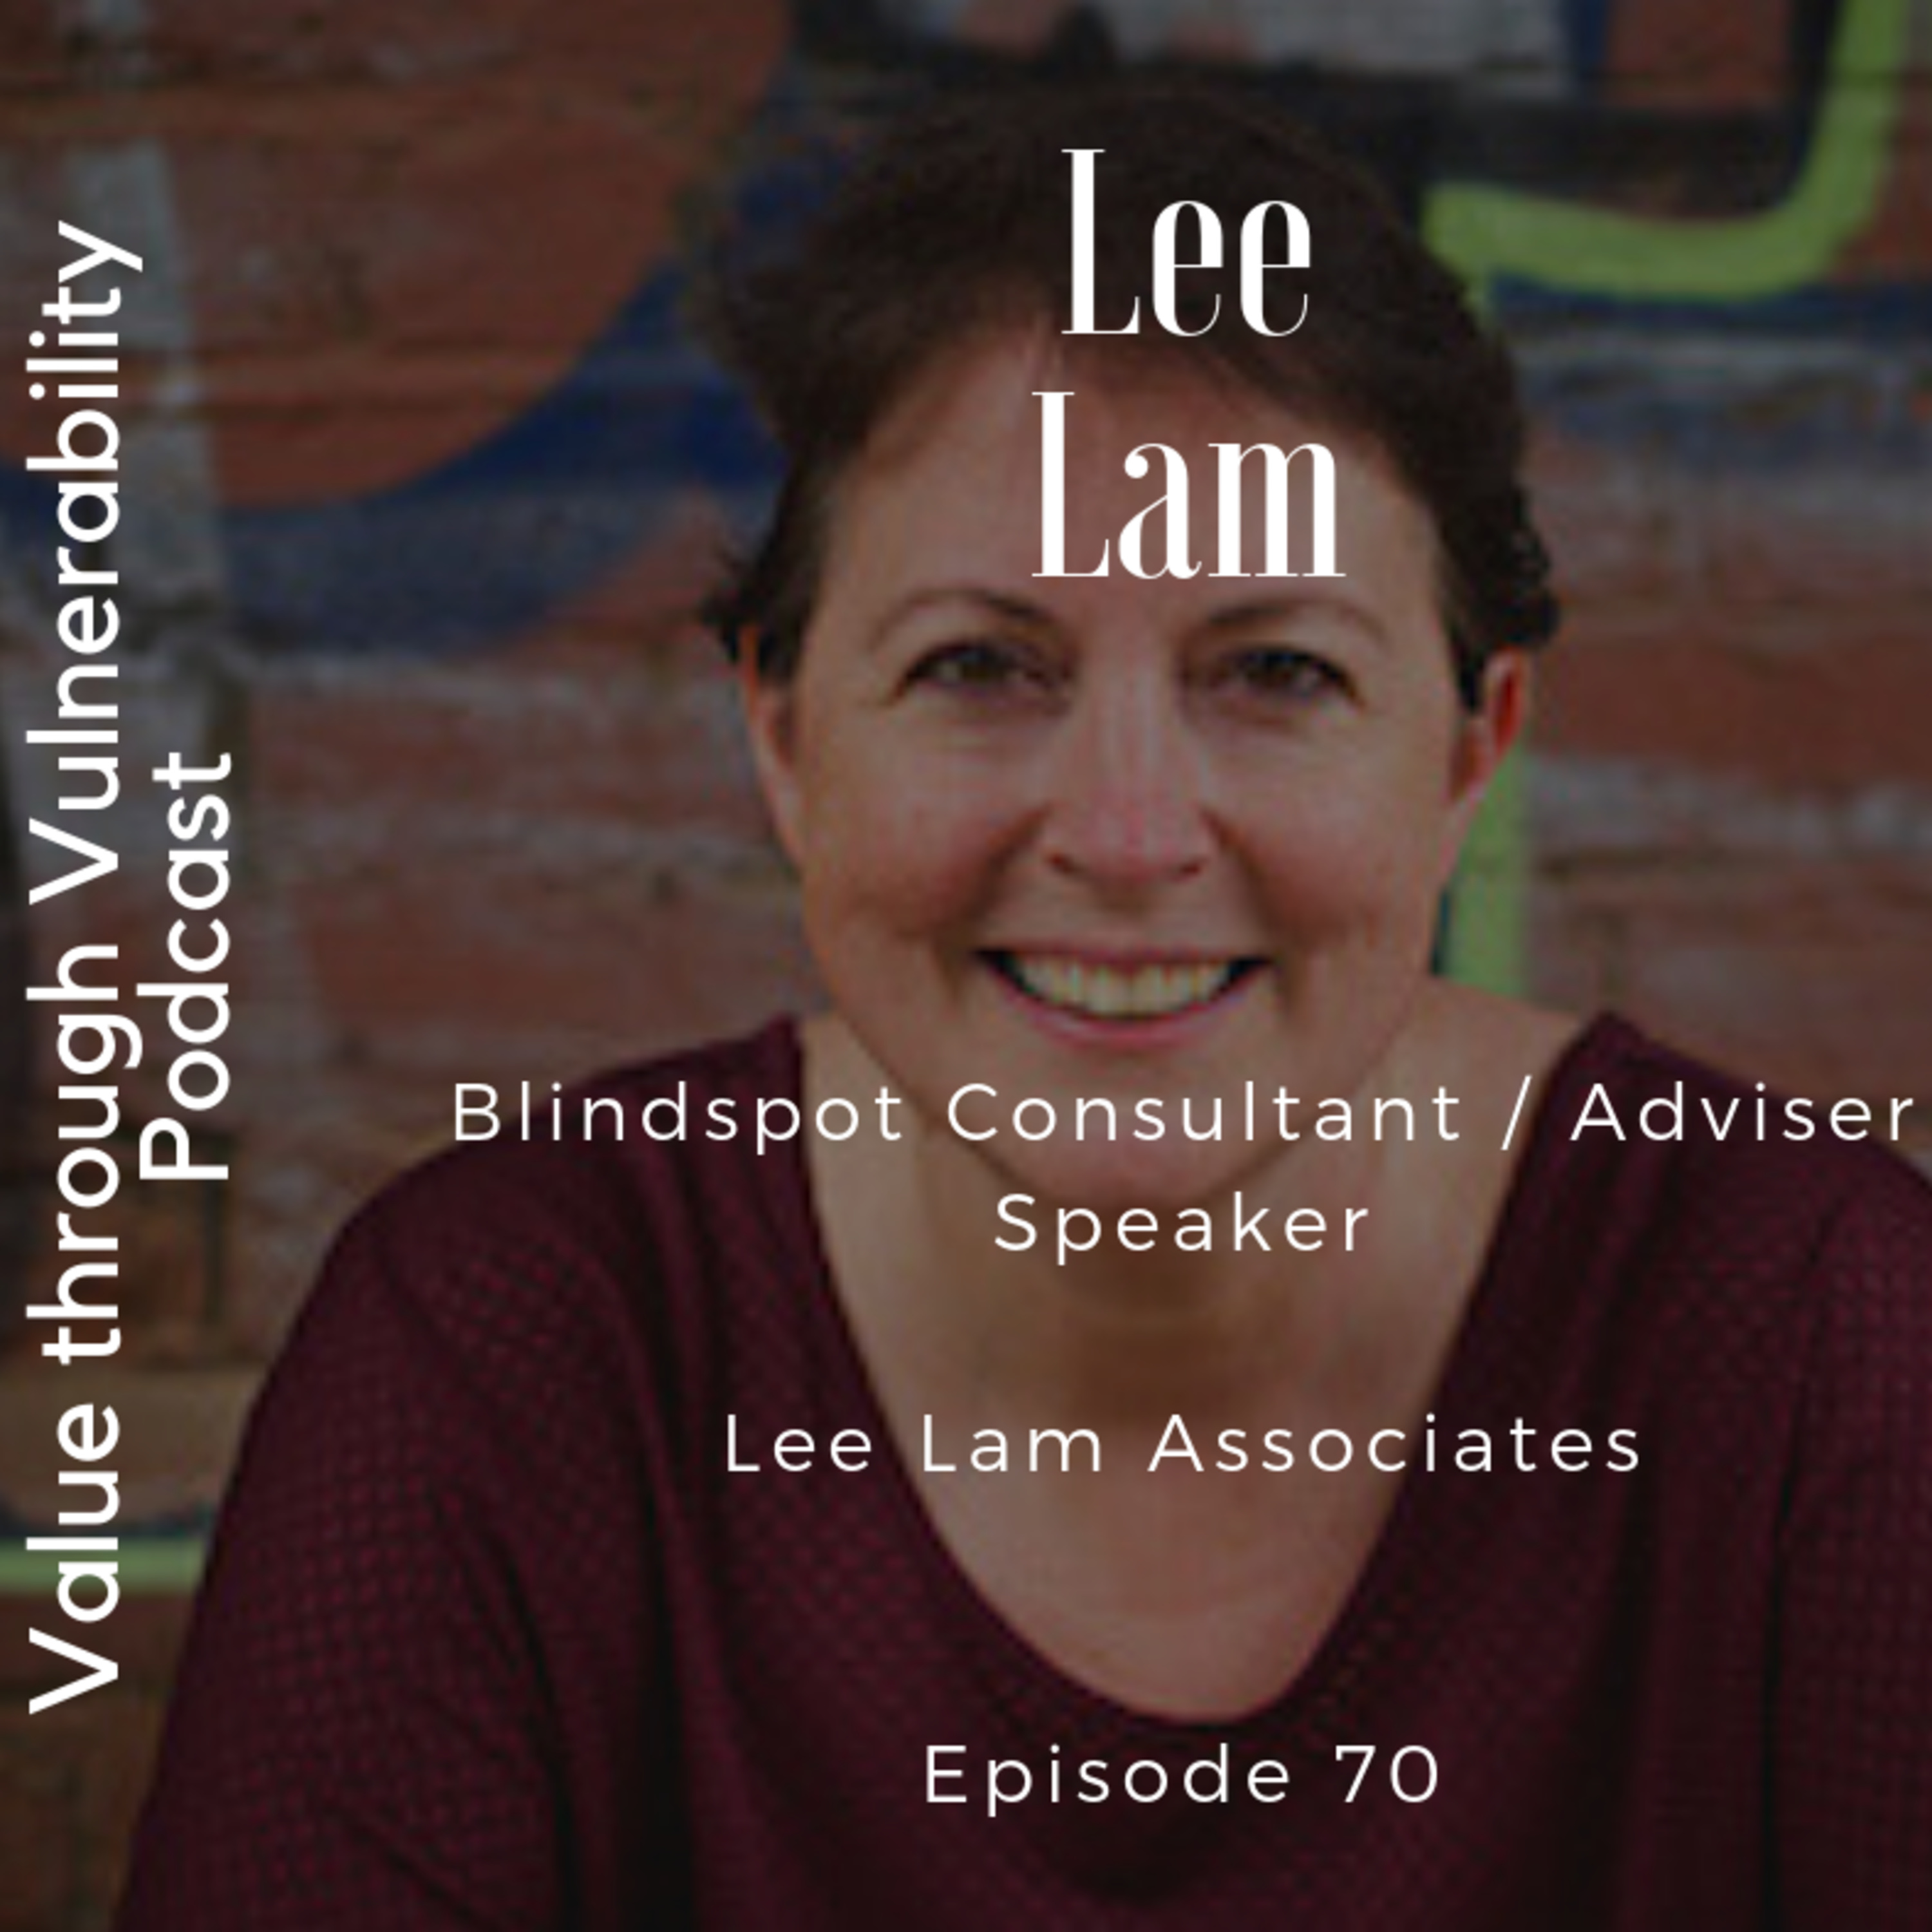 Episode 70 - Lee Lam, Blindspot Consultant, Adviser & Speaker - Lee Lam Associates